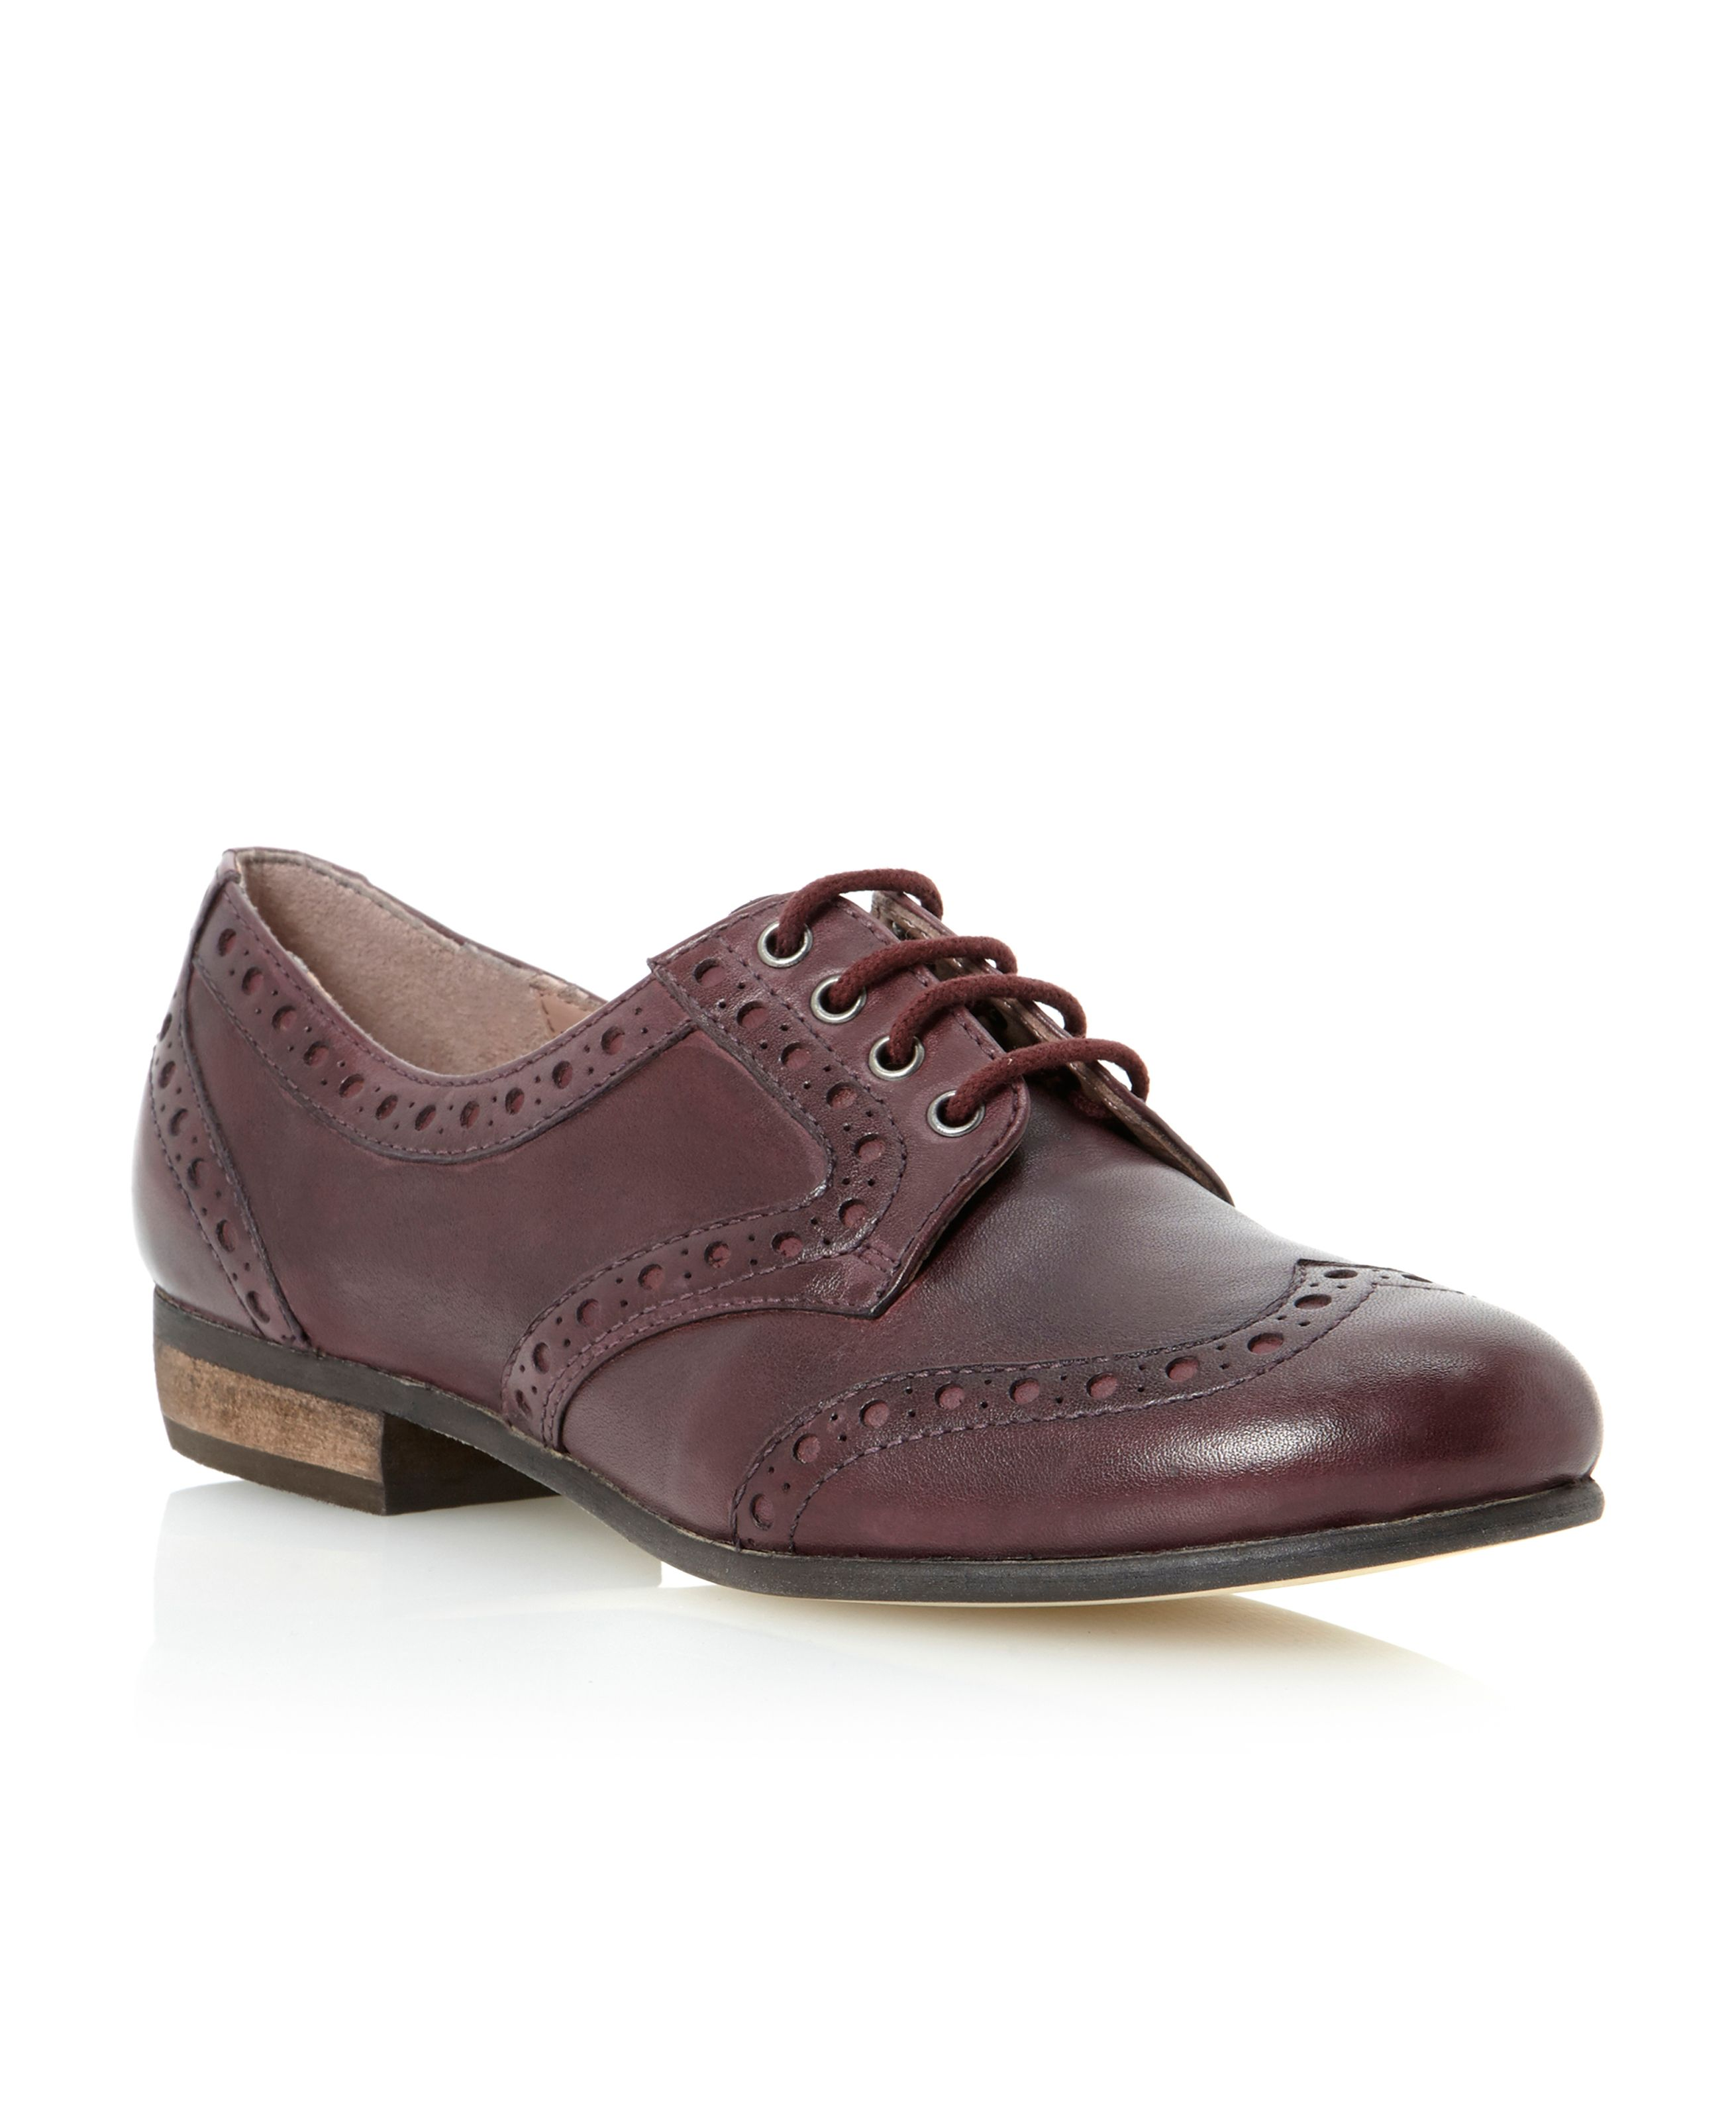 Linfords flexi lace up loafer shoes